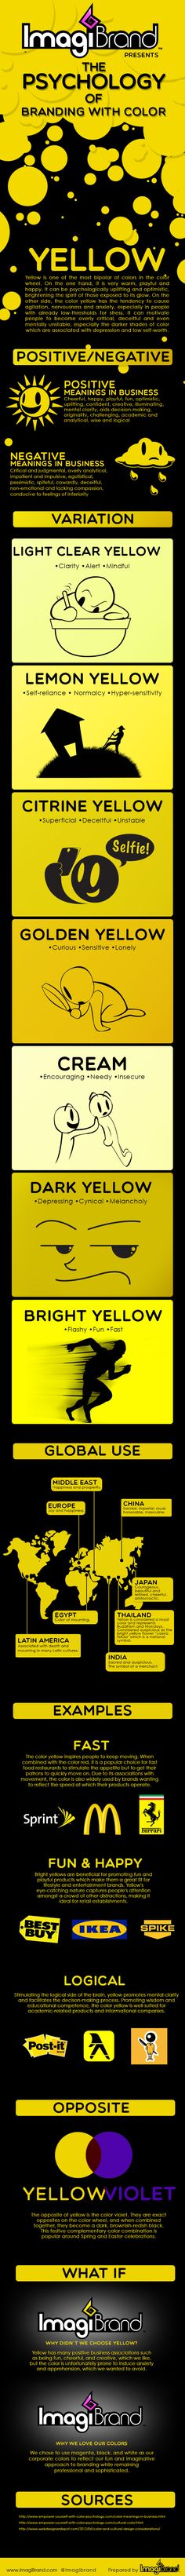 The Psychology of Branding with the Color Yellow